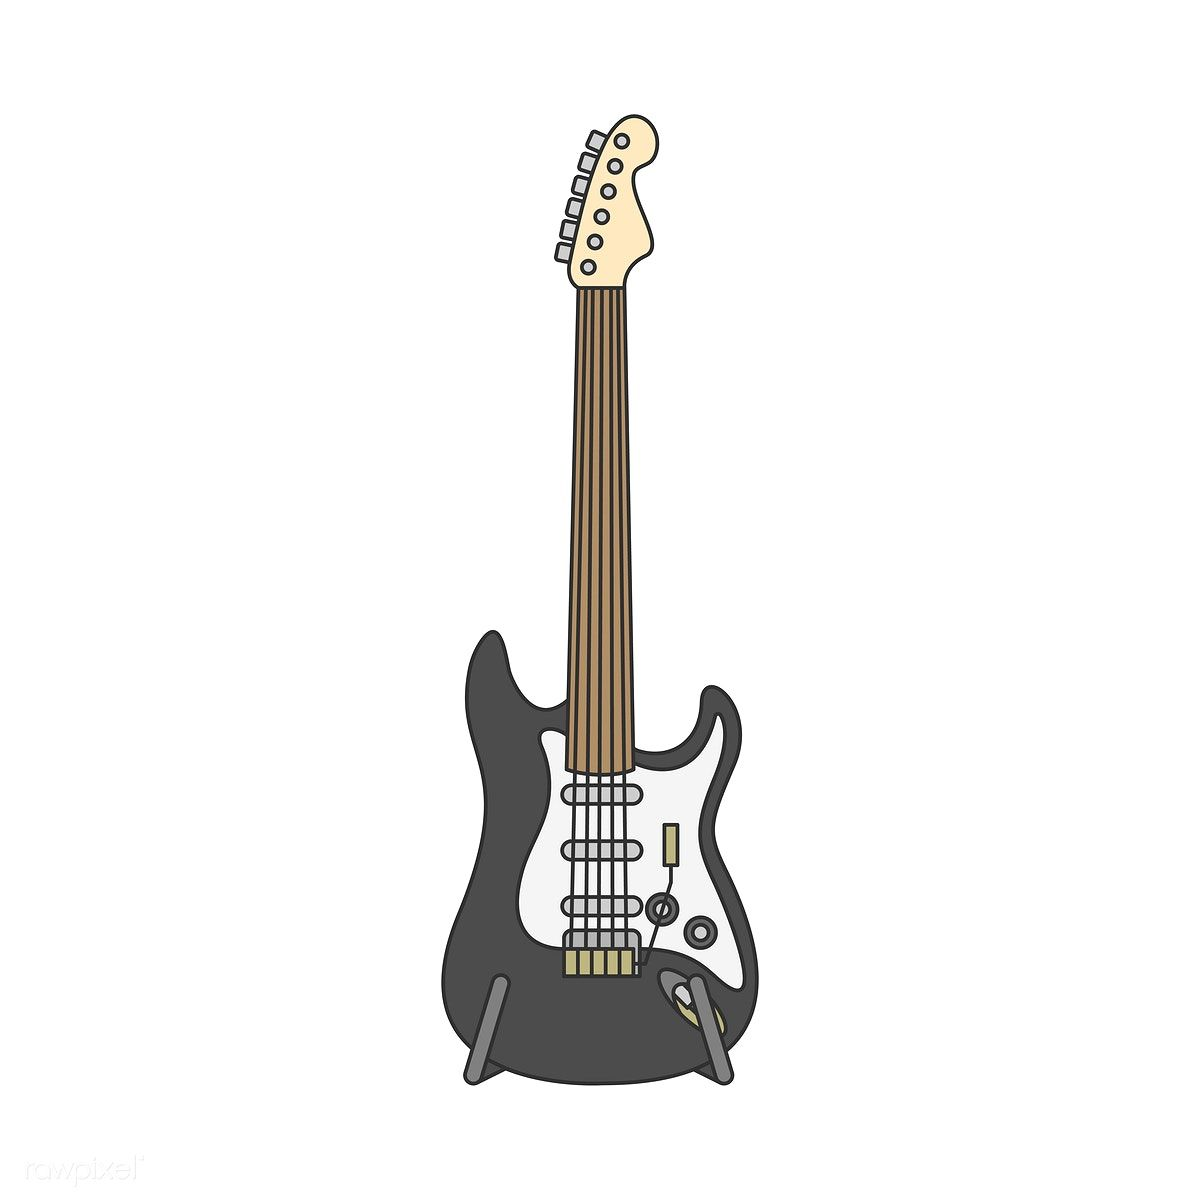 Electric Guitar Illustration Isolated On White Free Image By Rawpixel Com With Images Guitar Illustration Guitar Illustration